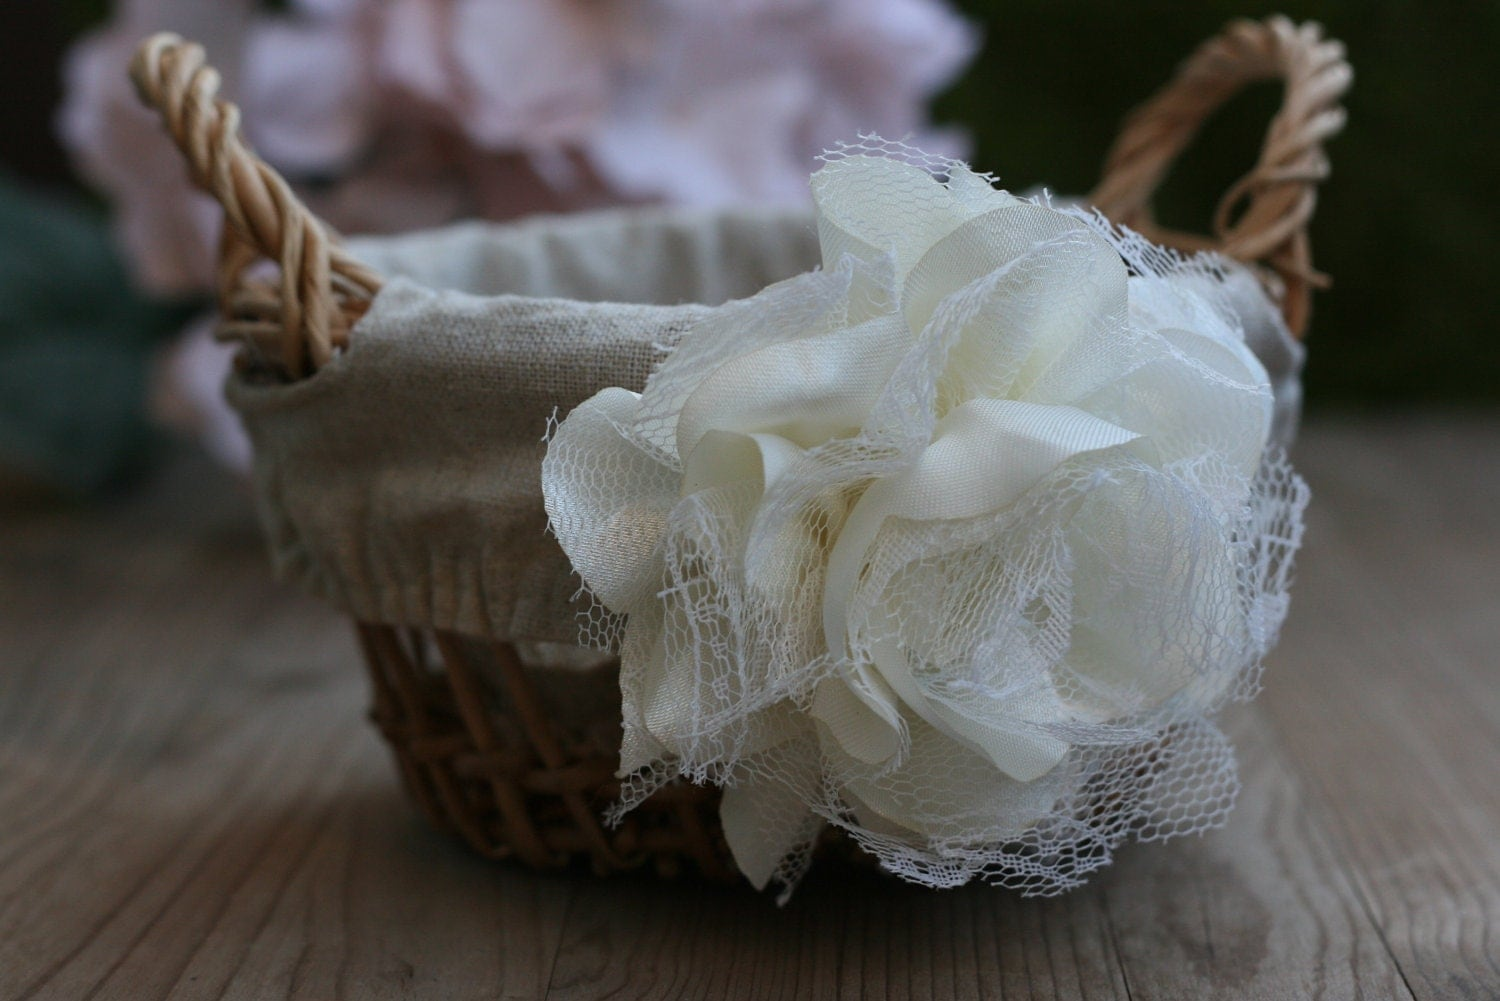 Rustic Burlap Flower Girl Baskets : Rustic burlap flower girl basket wedding by